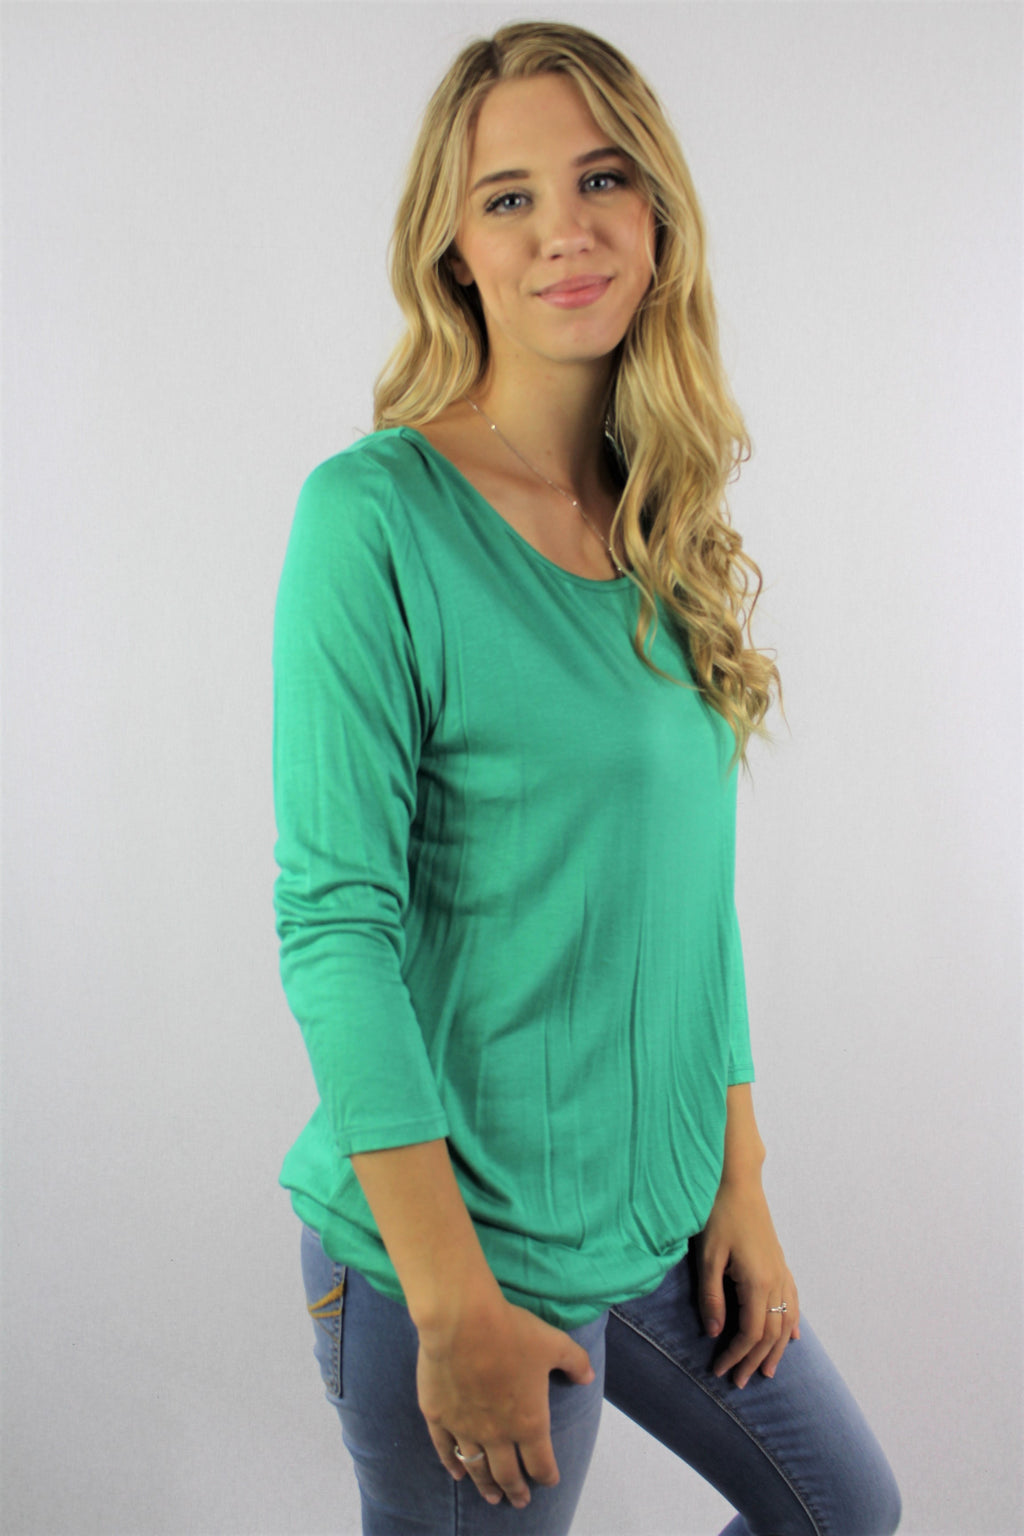 Women's 3/4th Sleeve Round Neck Top with Front Knot